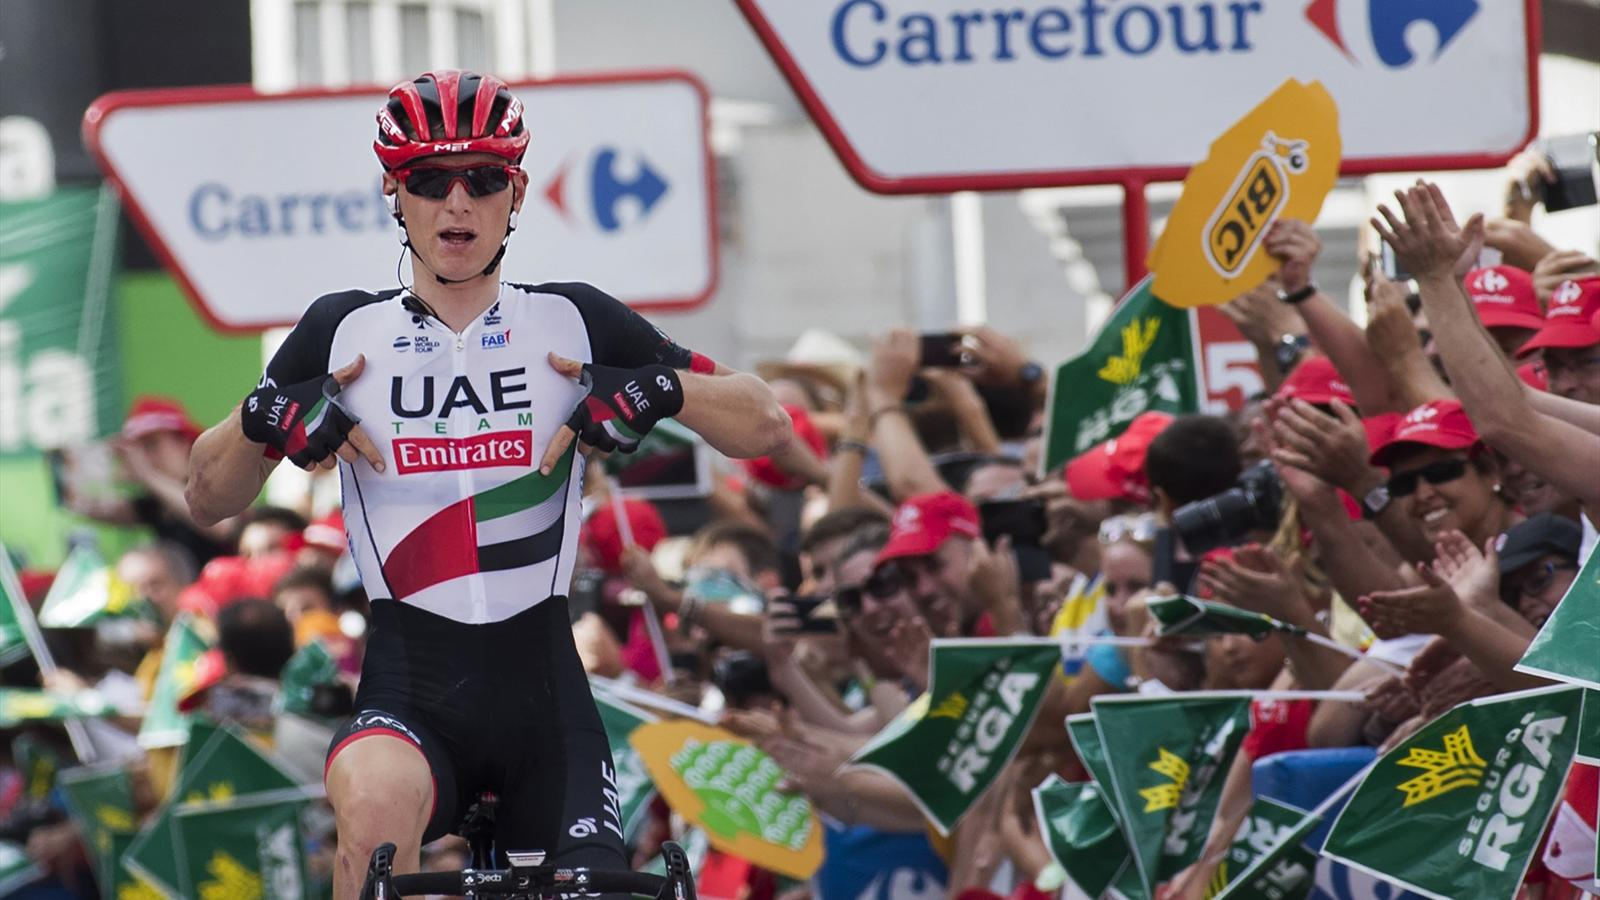 La Vuelta: Matej Mohoric wins Stage 7 with remarkable solo breakaway